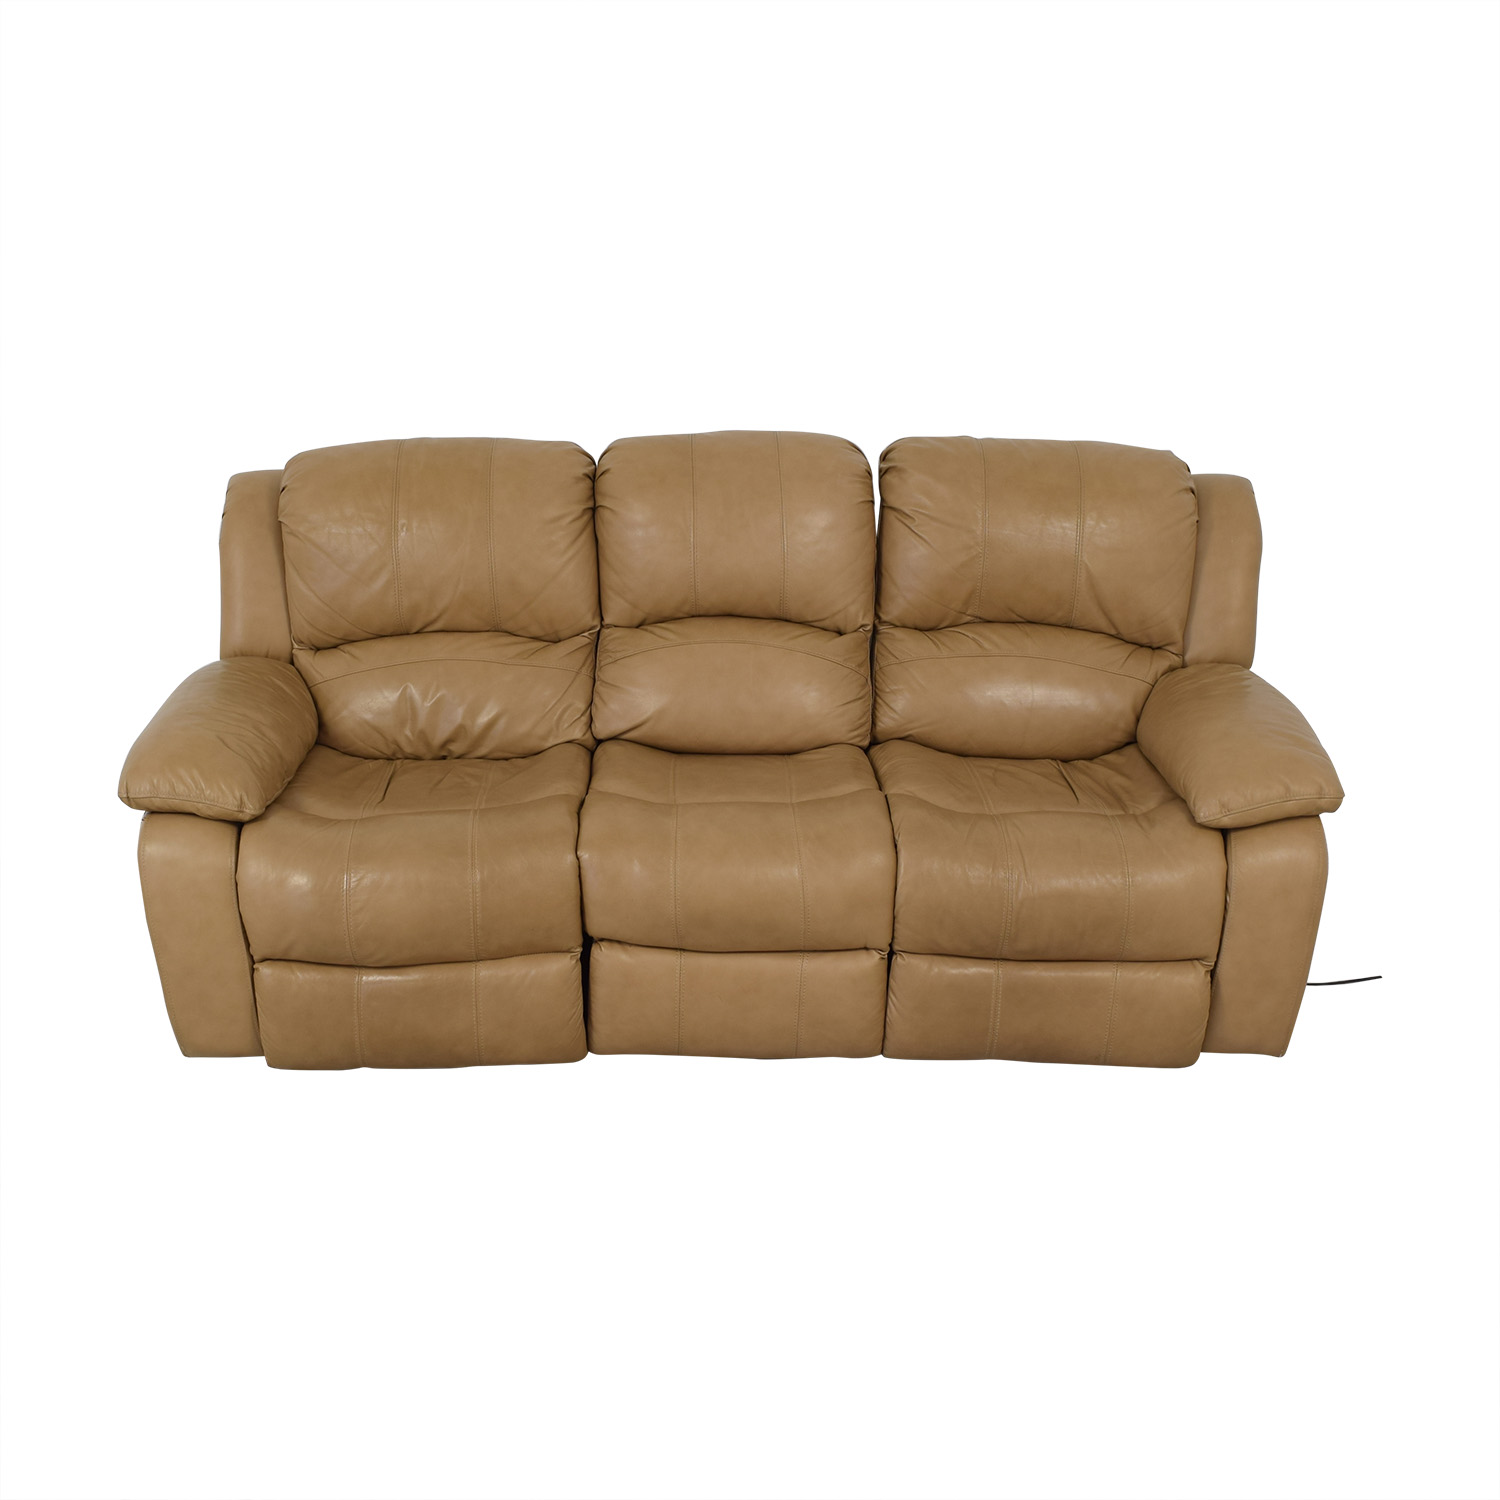 Ordinaire 76% OFF   Raymour U0026 Flanigan Raymour U0026 Flanigan Bryant II Leather Power  Reclining Sofa / Sofas